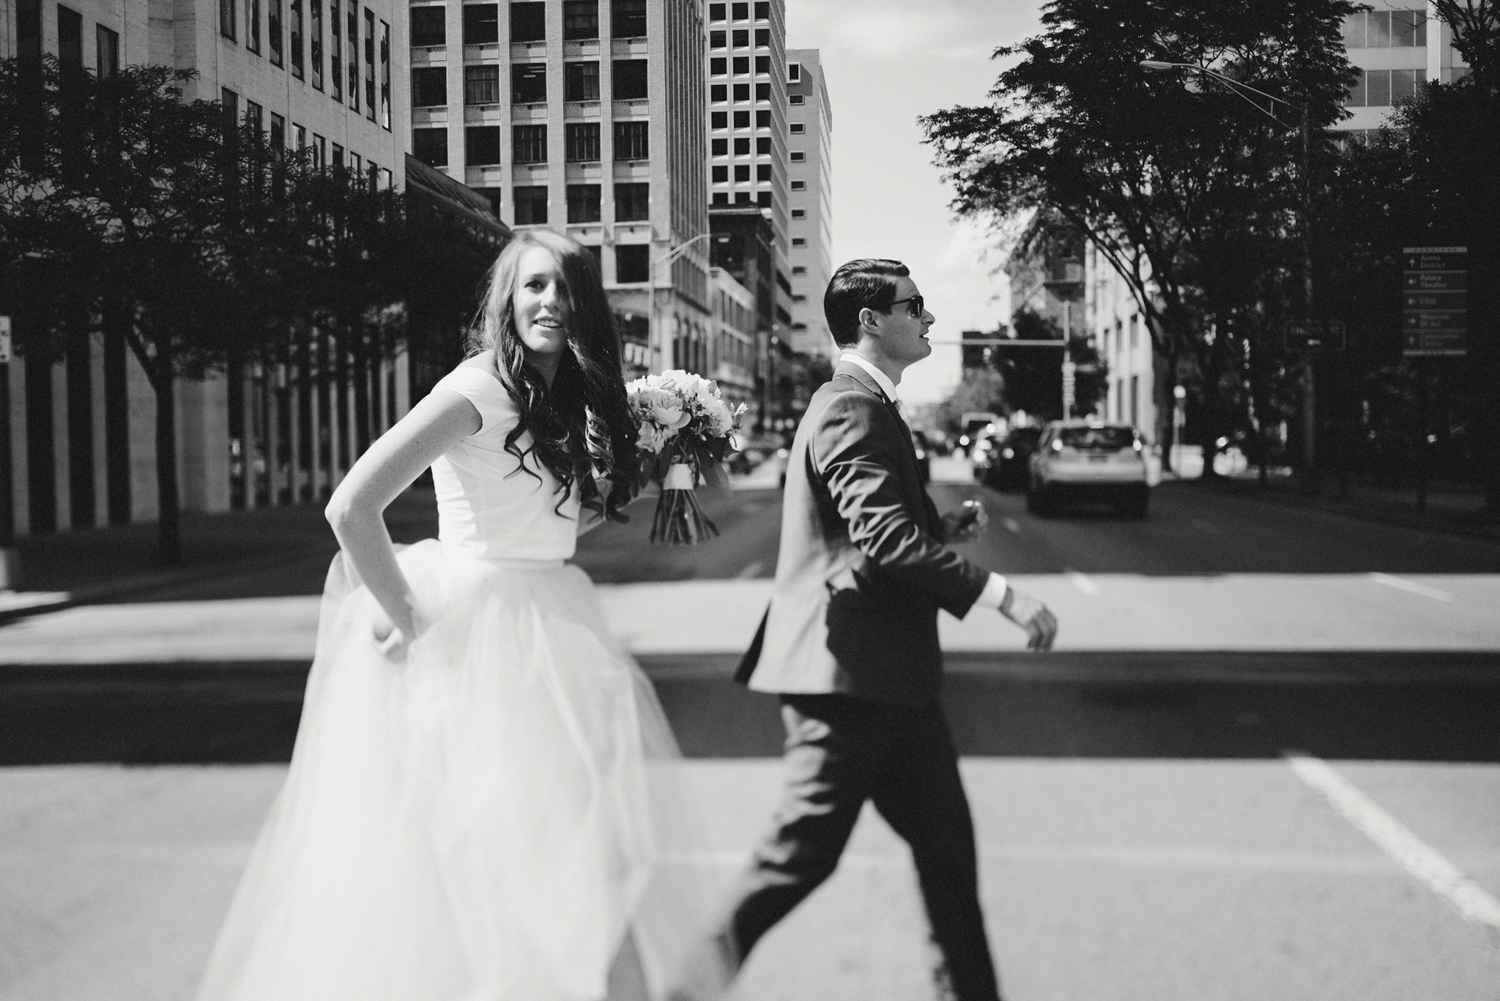 Designer Downtown Columbus Ohio Wedding Photography